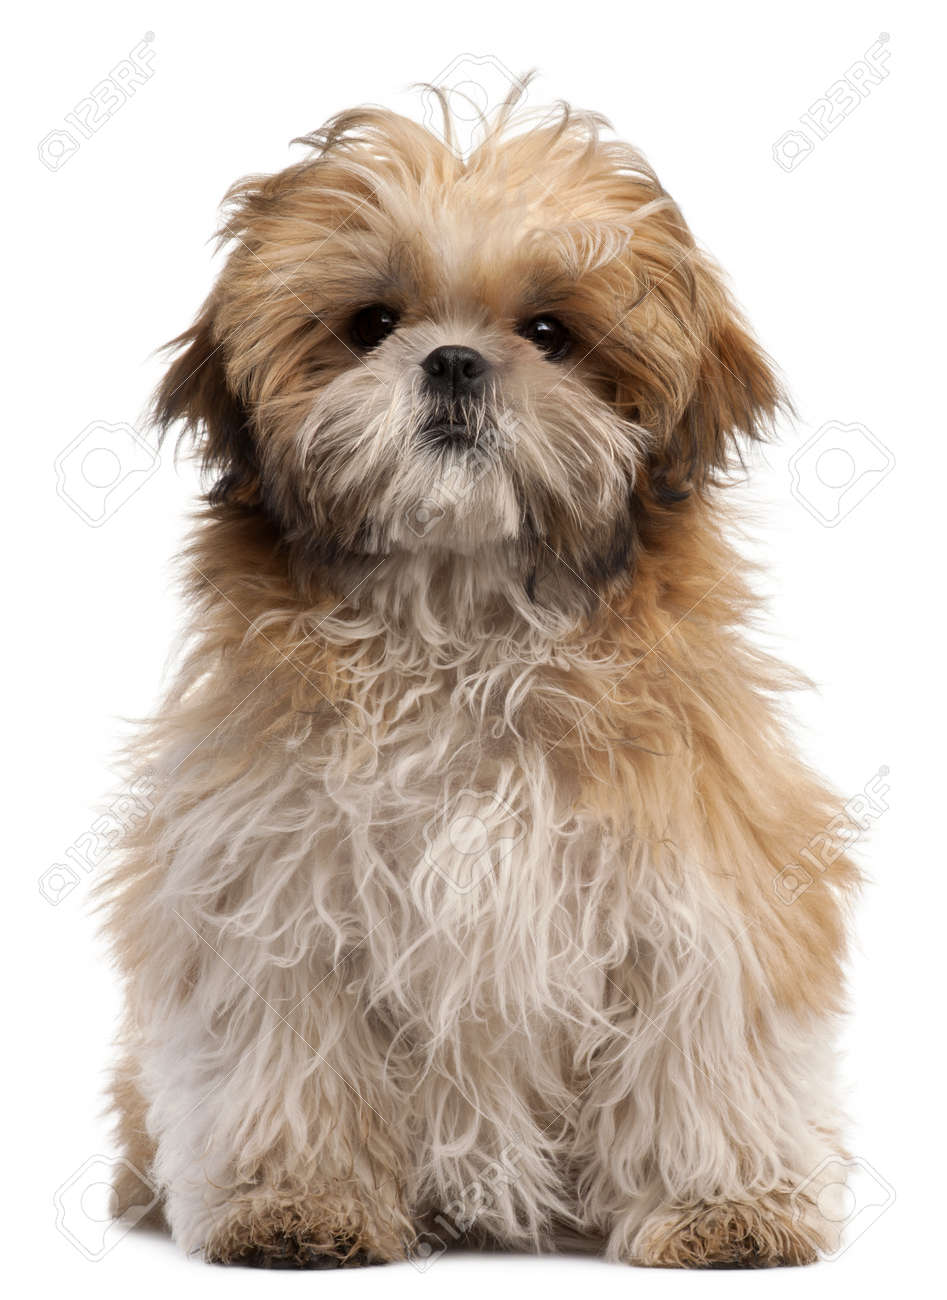 Shih Tzu Puppy 6 Months Old Sitting In Front Of White Background